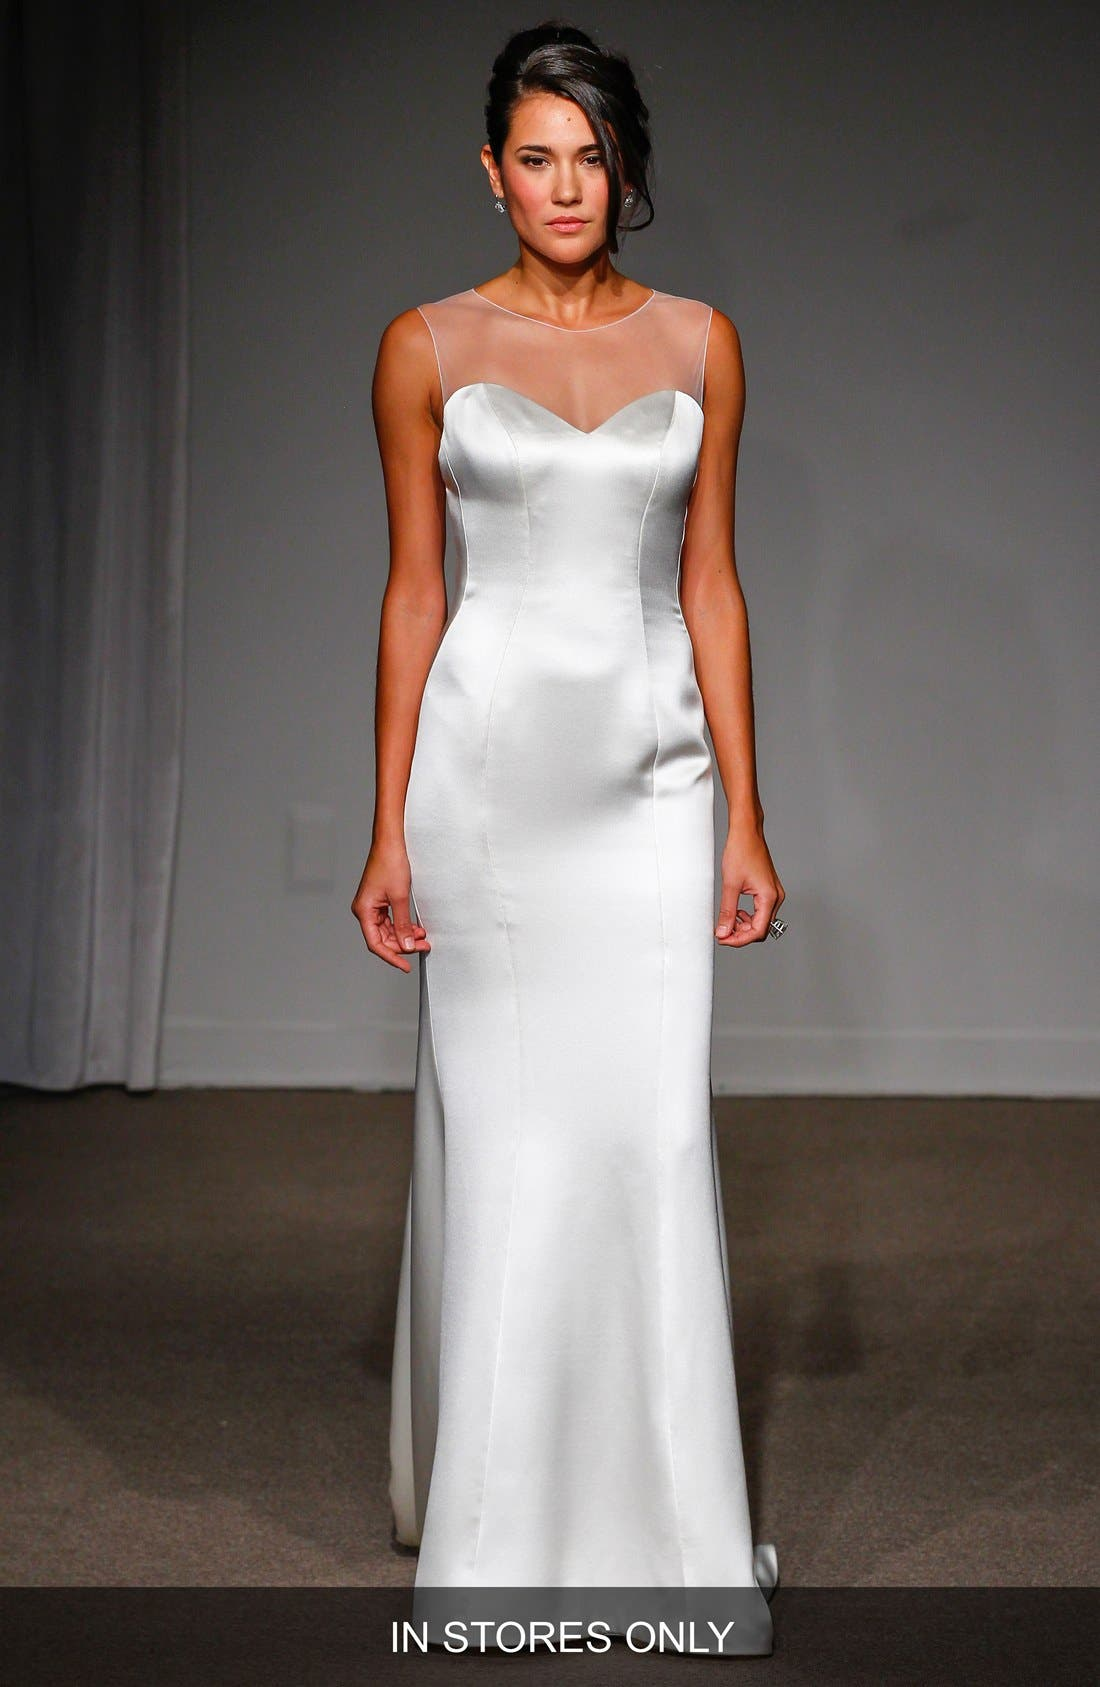 ANNA MAIER COUTURE 'Nicole' Illusion Neck Satin A-Line